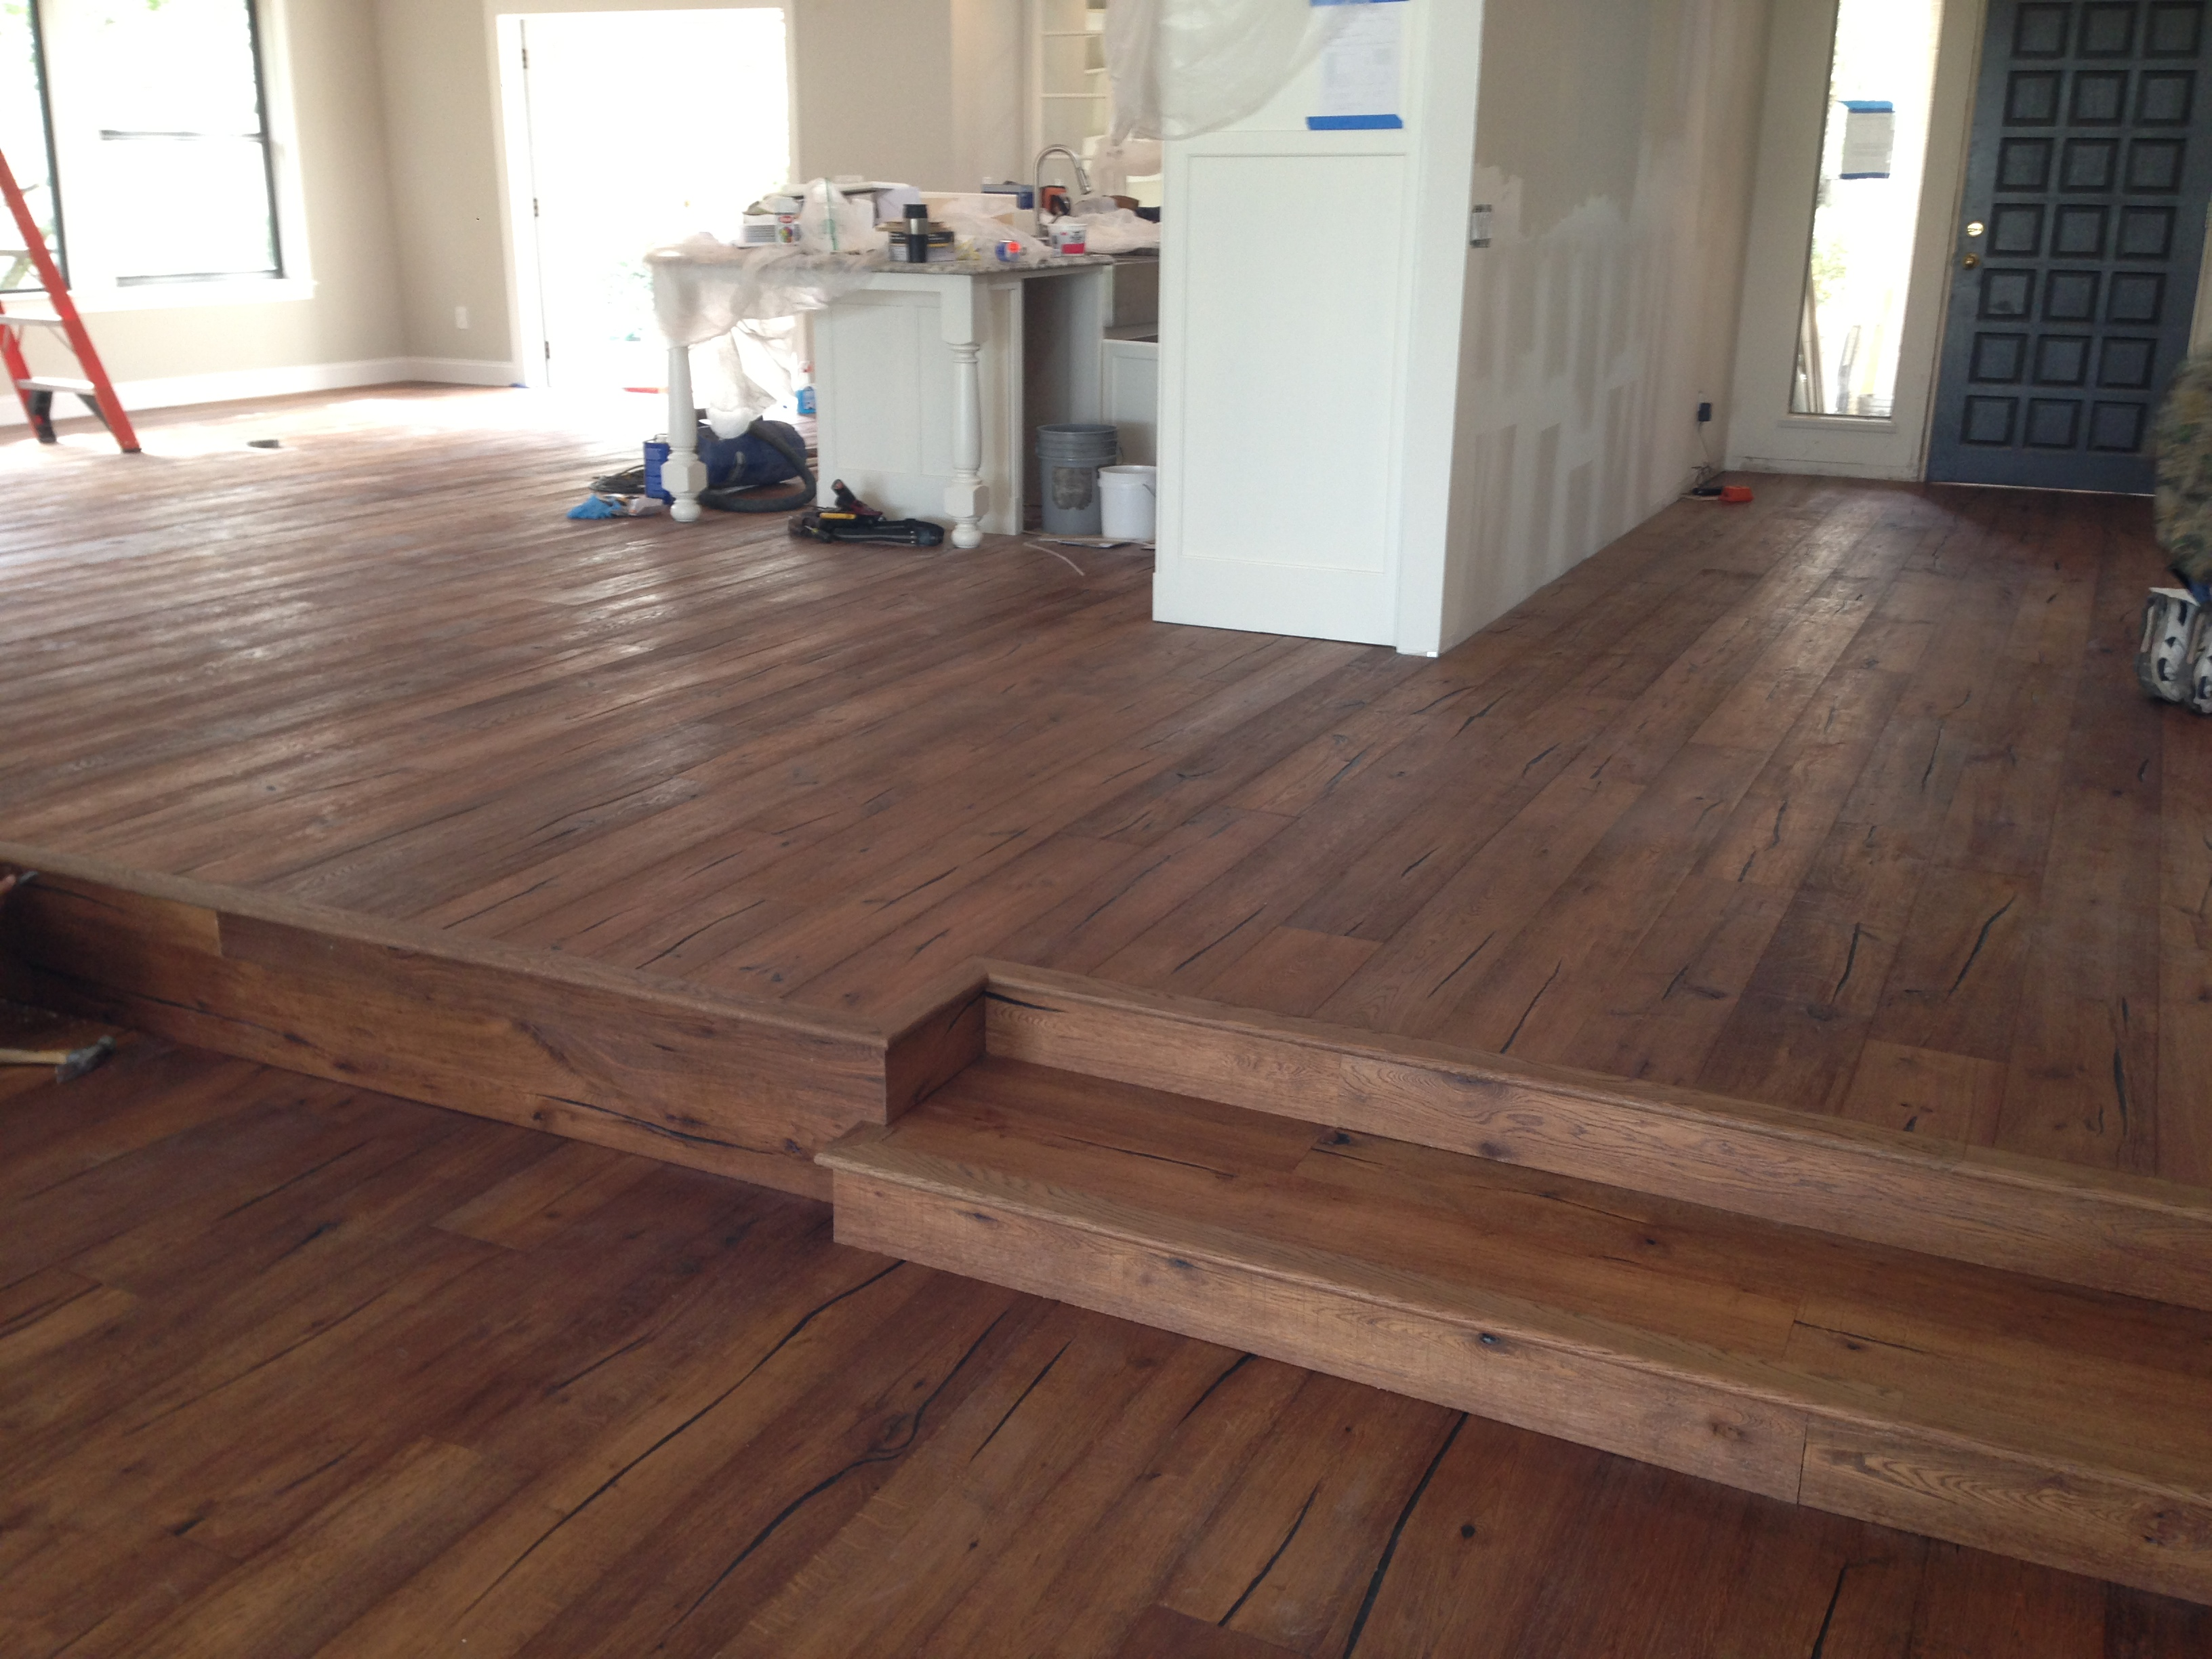 Quality wood flooring tile and stone in st augustine florida for Flooring st augustine